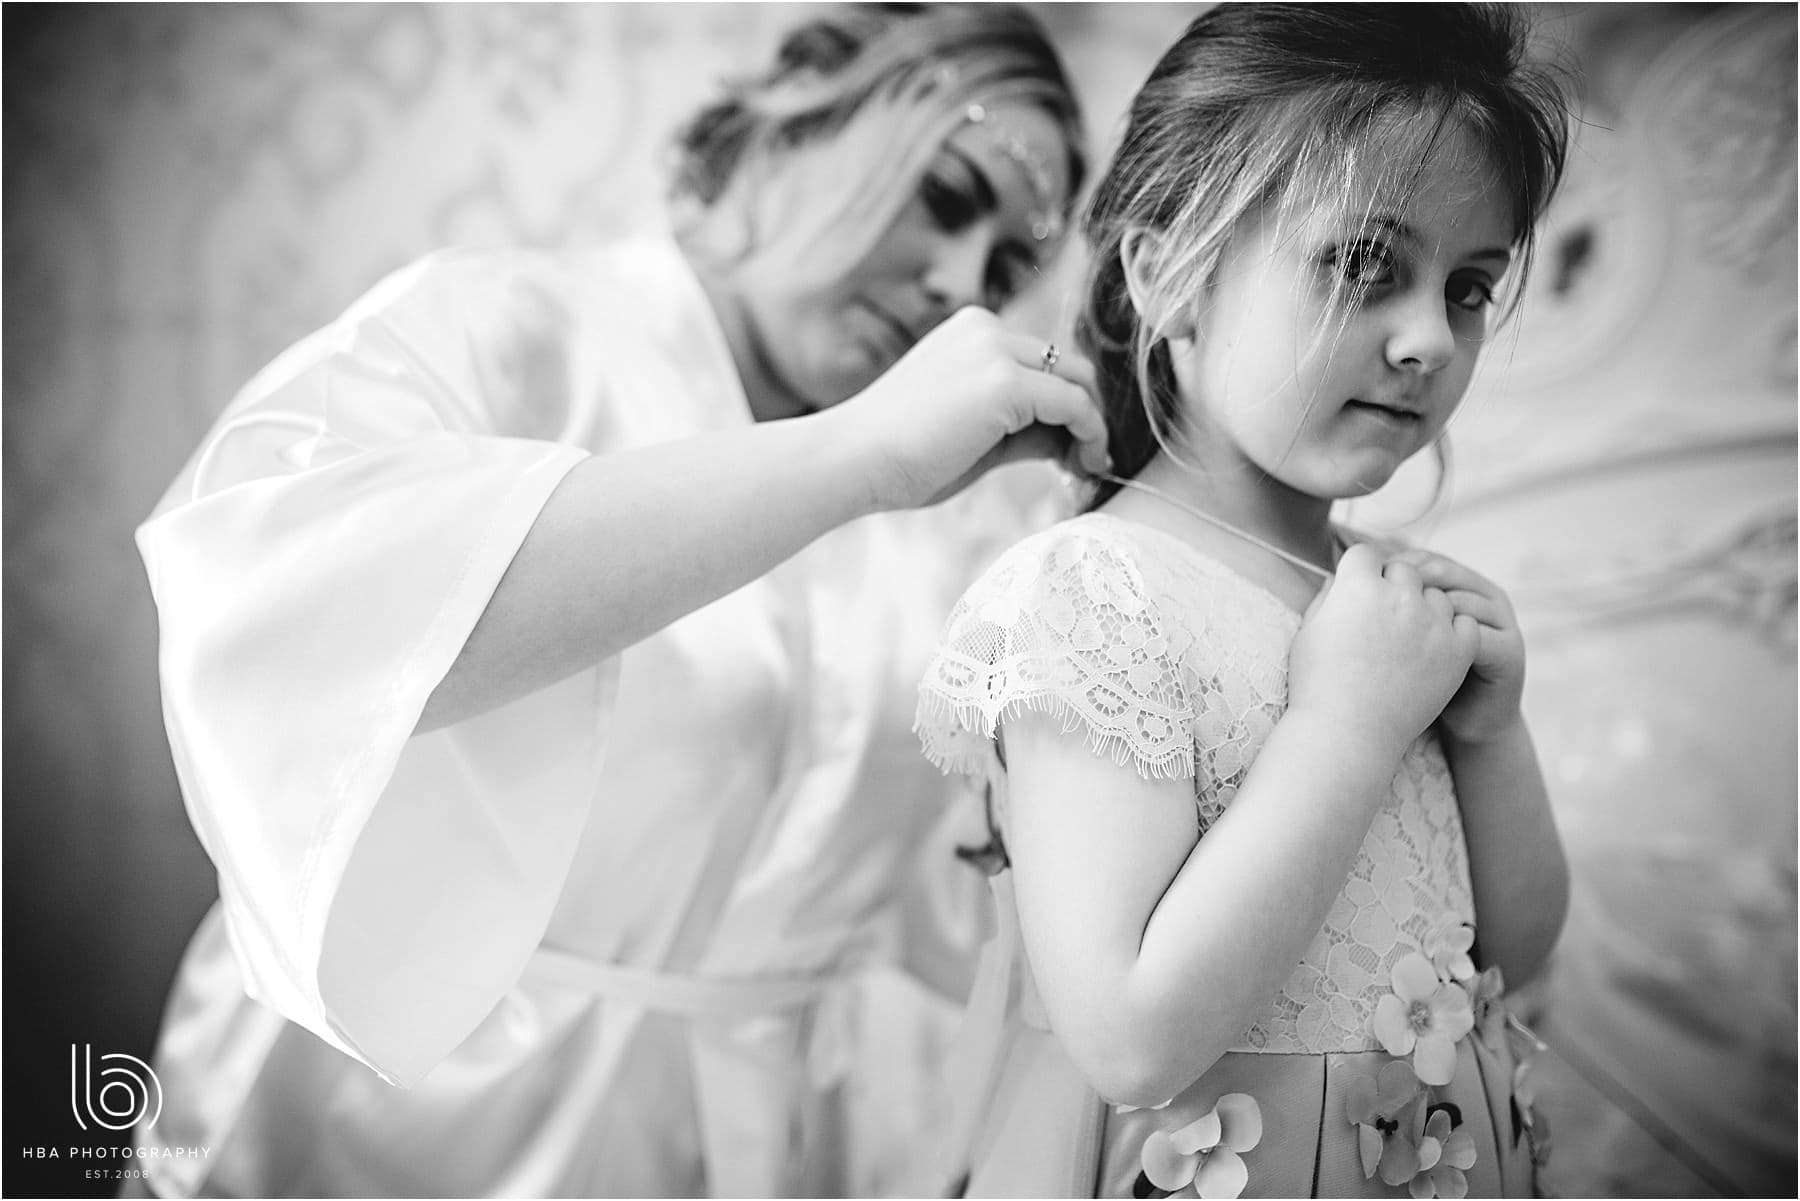 the flower girl getting her necklace on